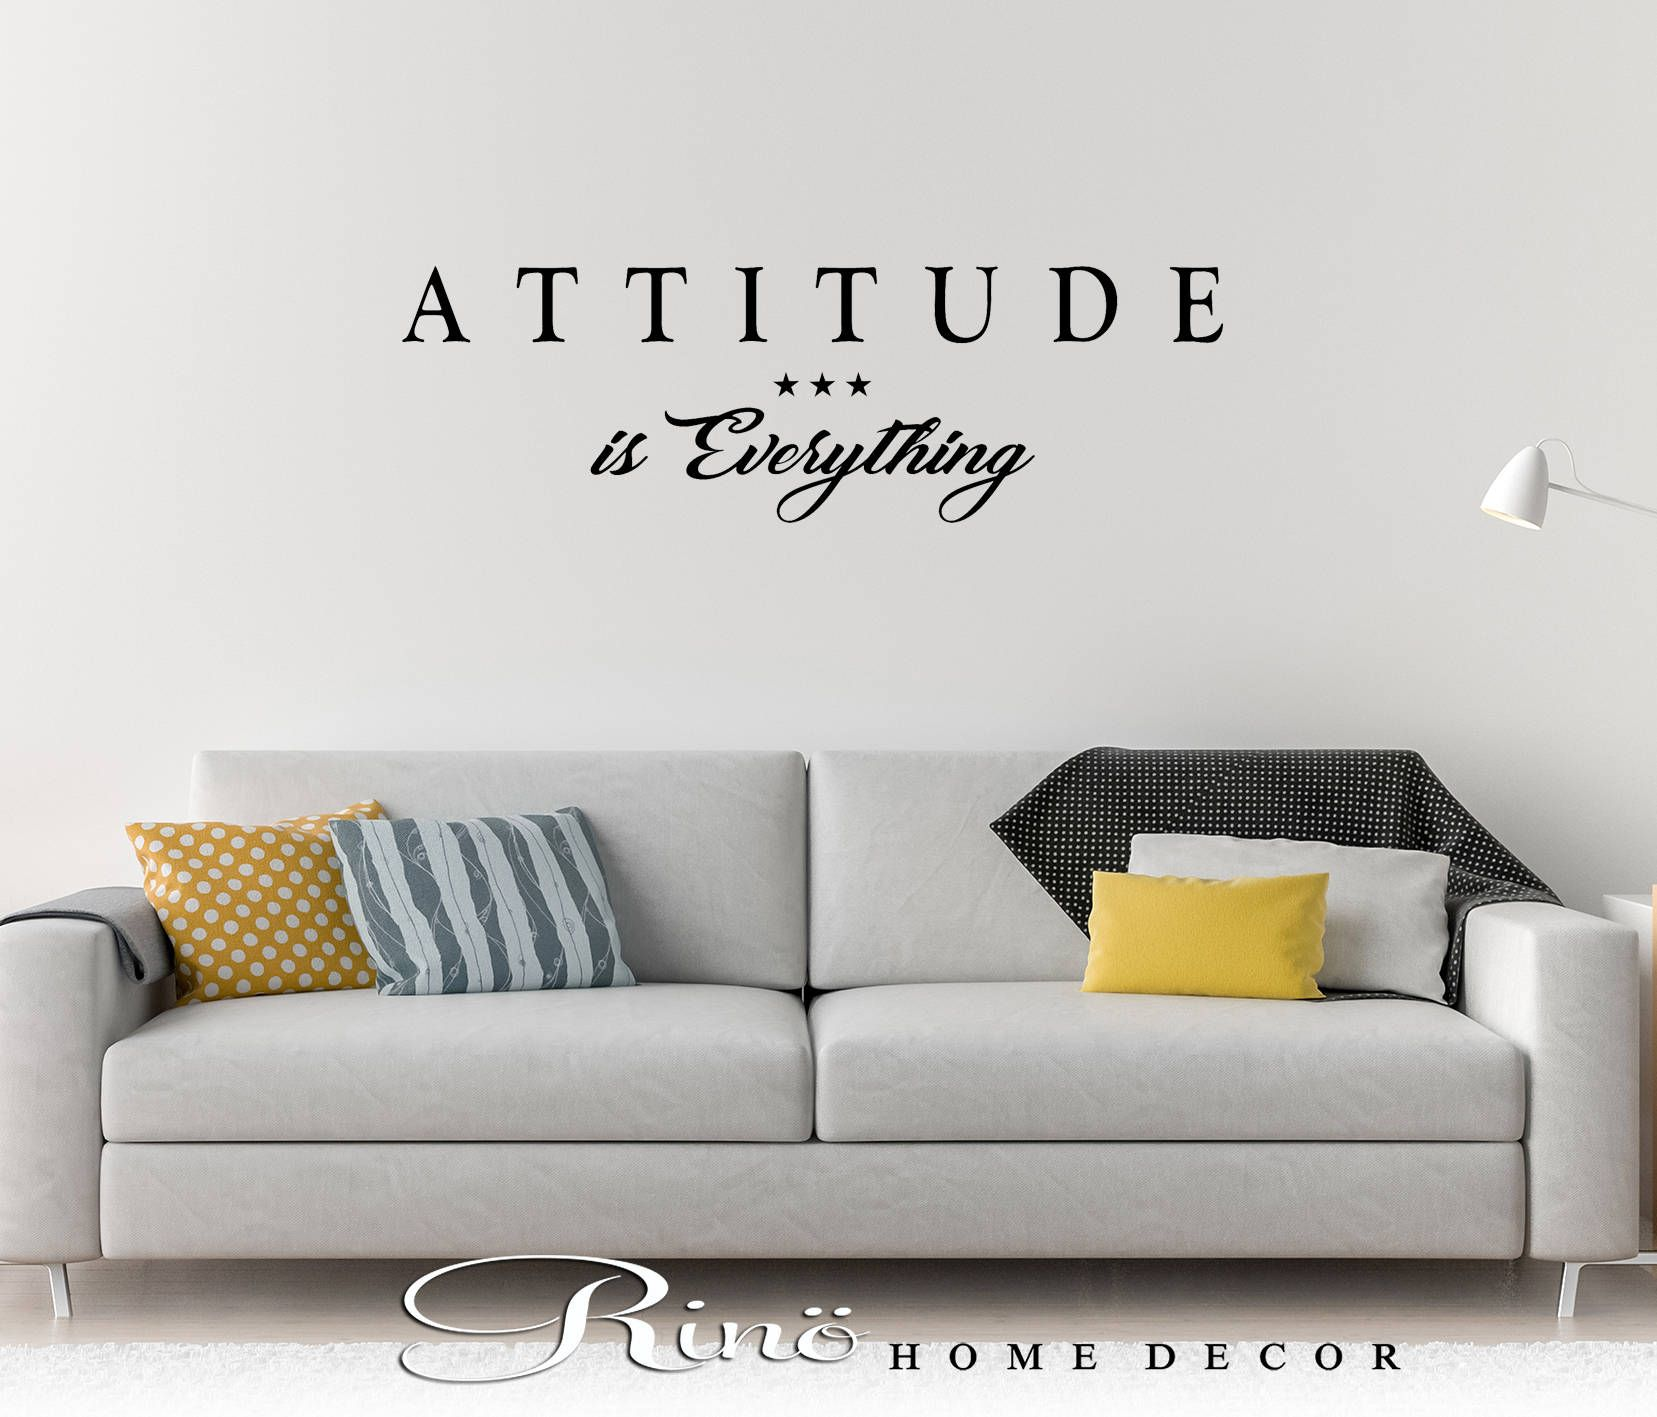 Attitude is everything wall decal wall quote vinyl lettering attitude is everything wall decal wall quote vinyl lettering sticker home decor office wall saying amipublicfo Images